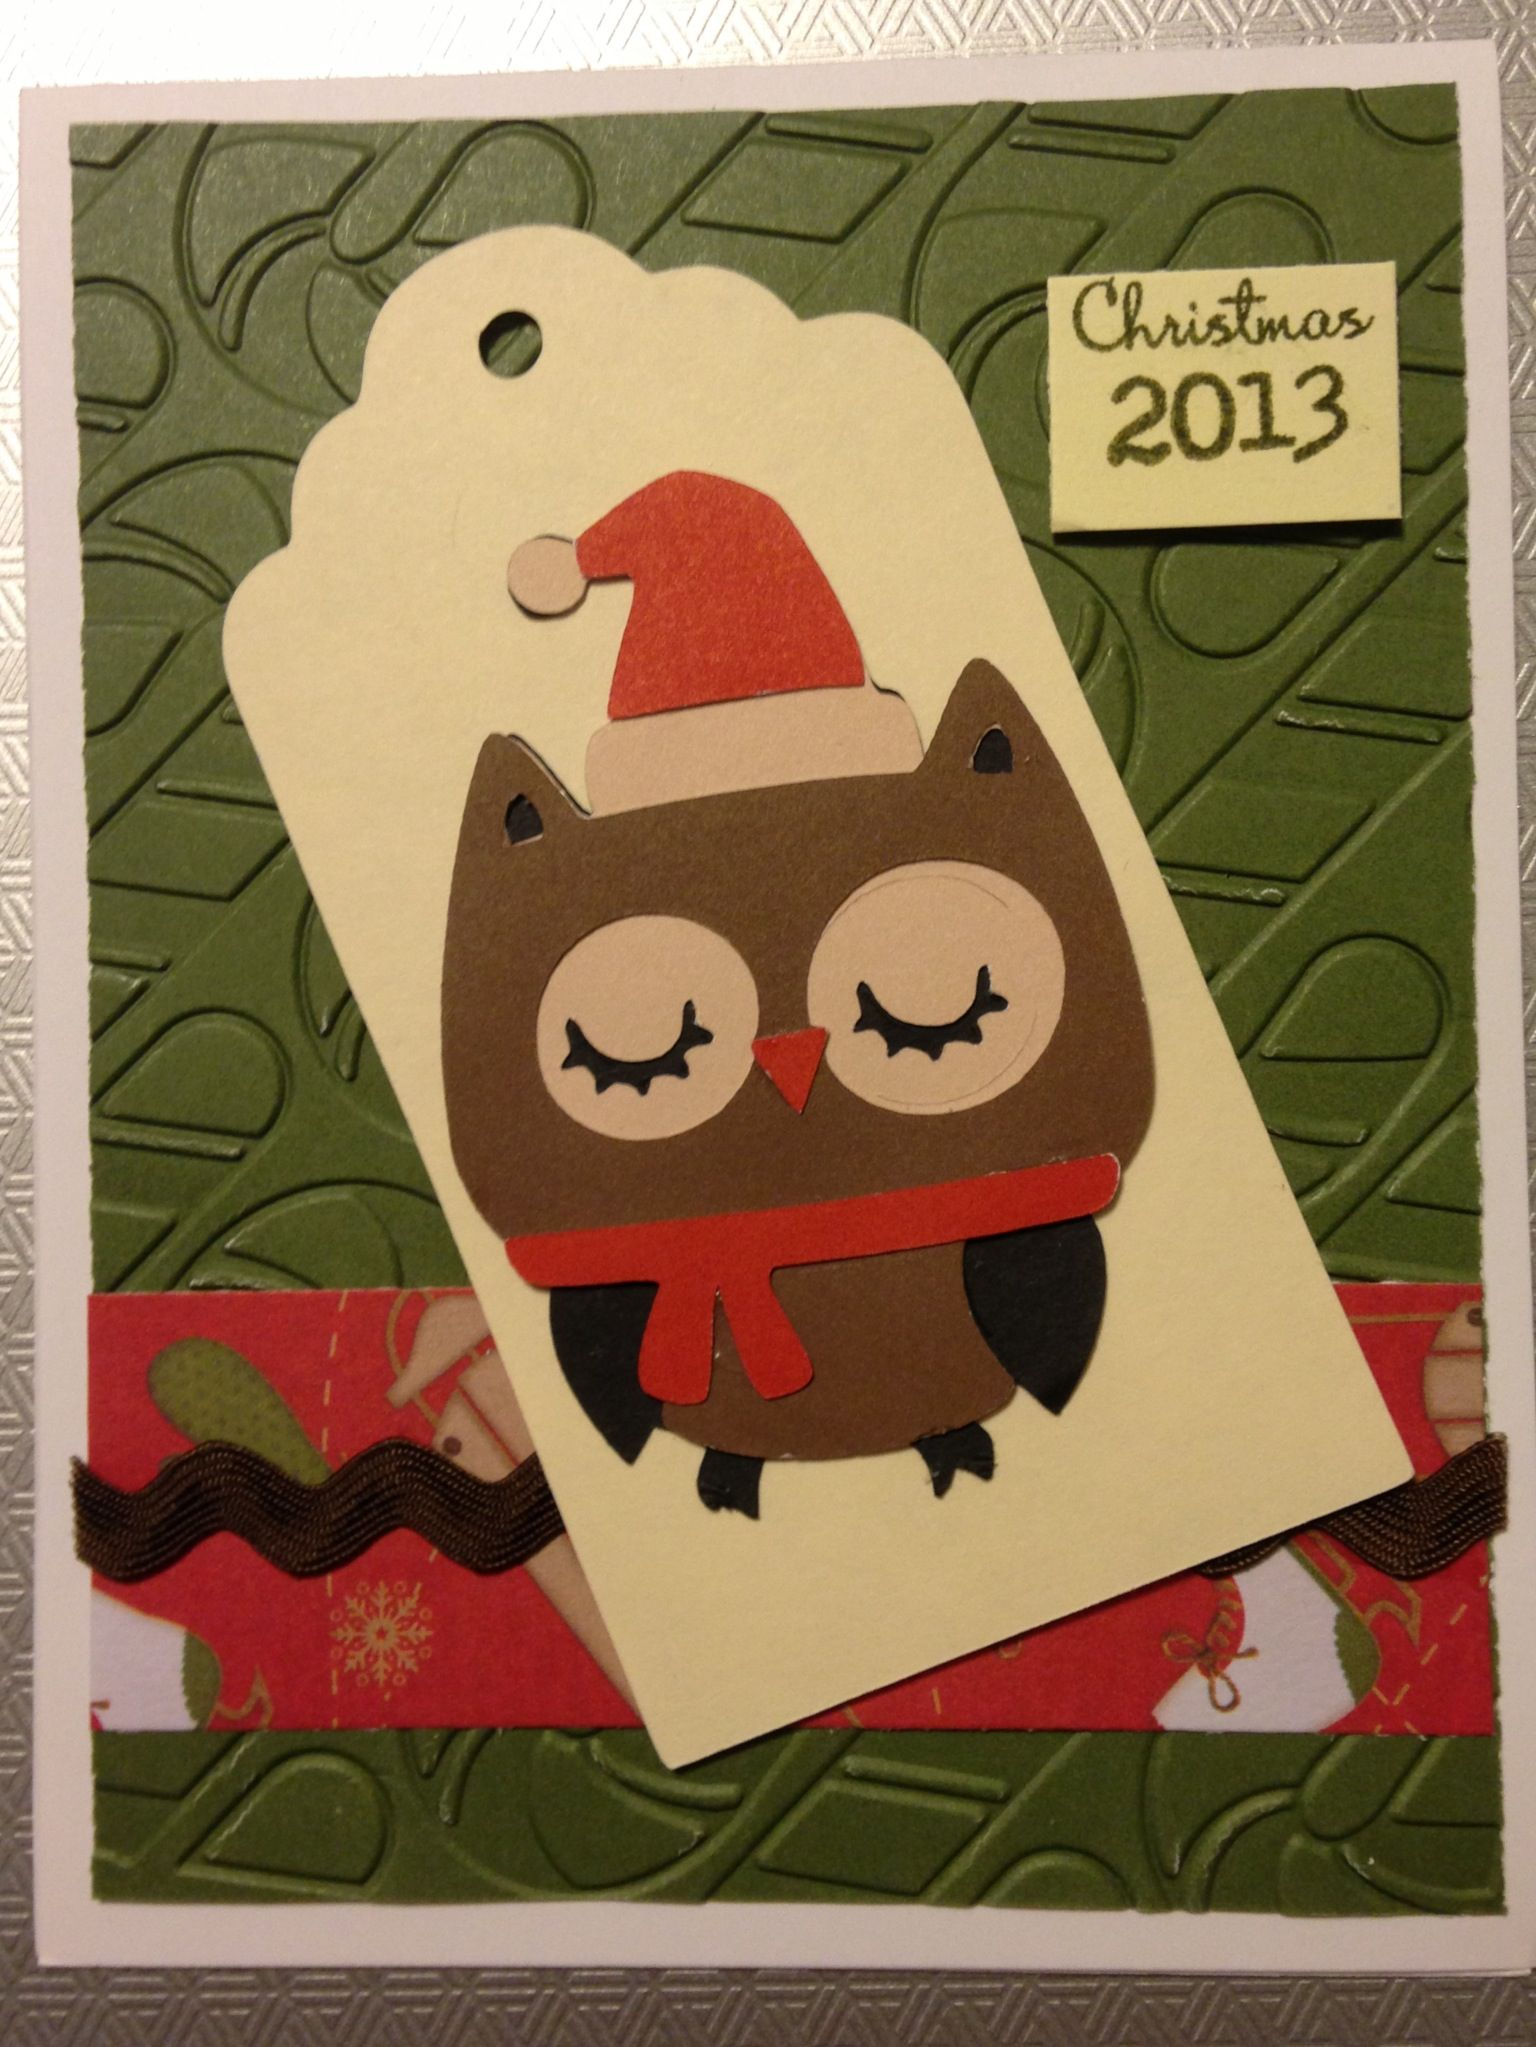 Homemade Christmas Card A Christmas Owl with embossed candy canes